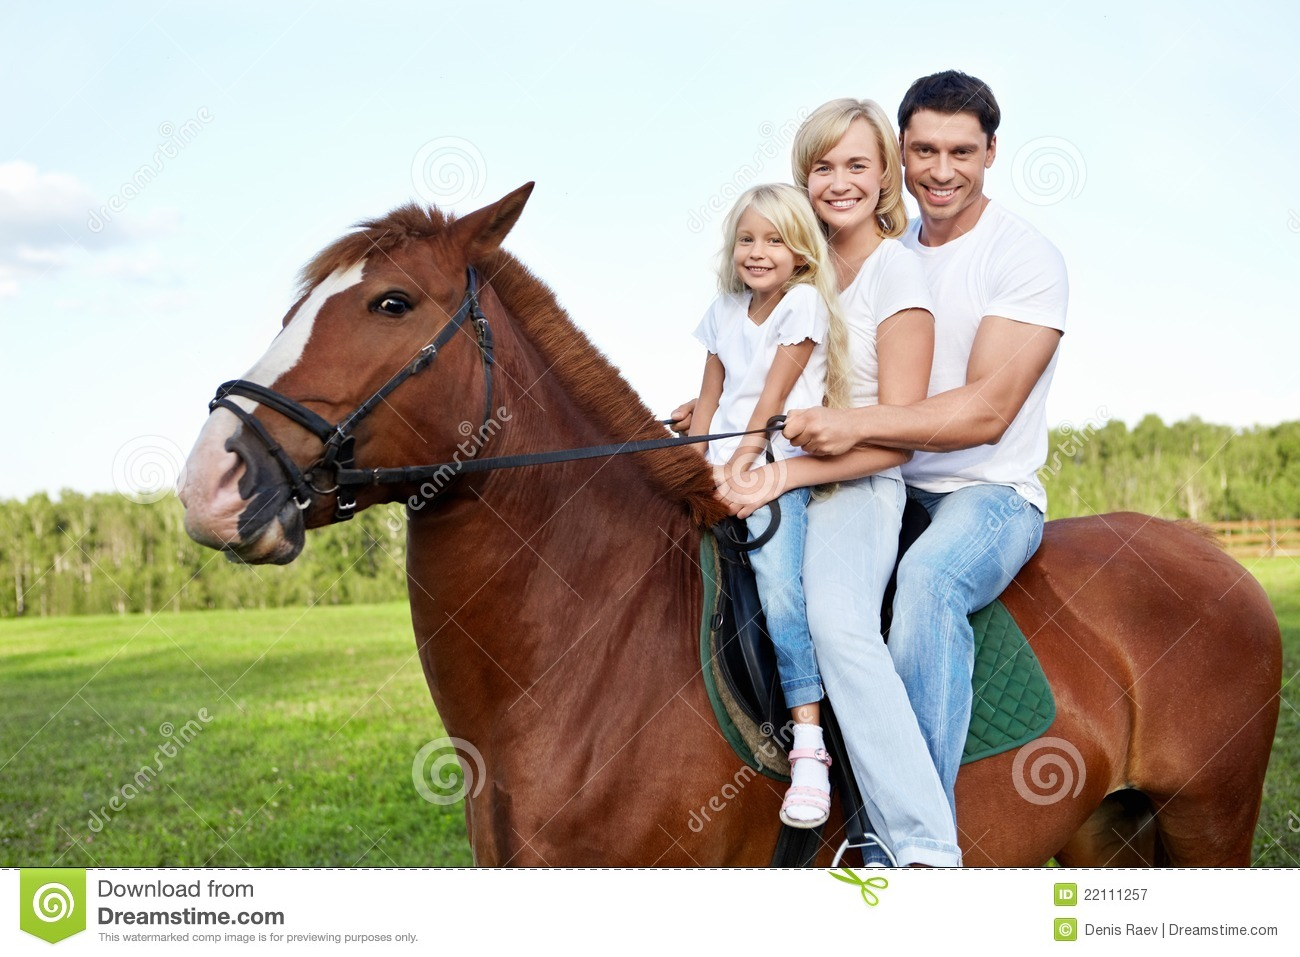 Horse Riding Stock Image Image Of Male Girls Equine 22111257